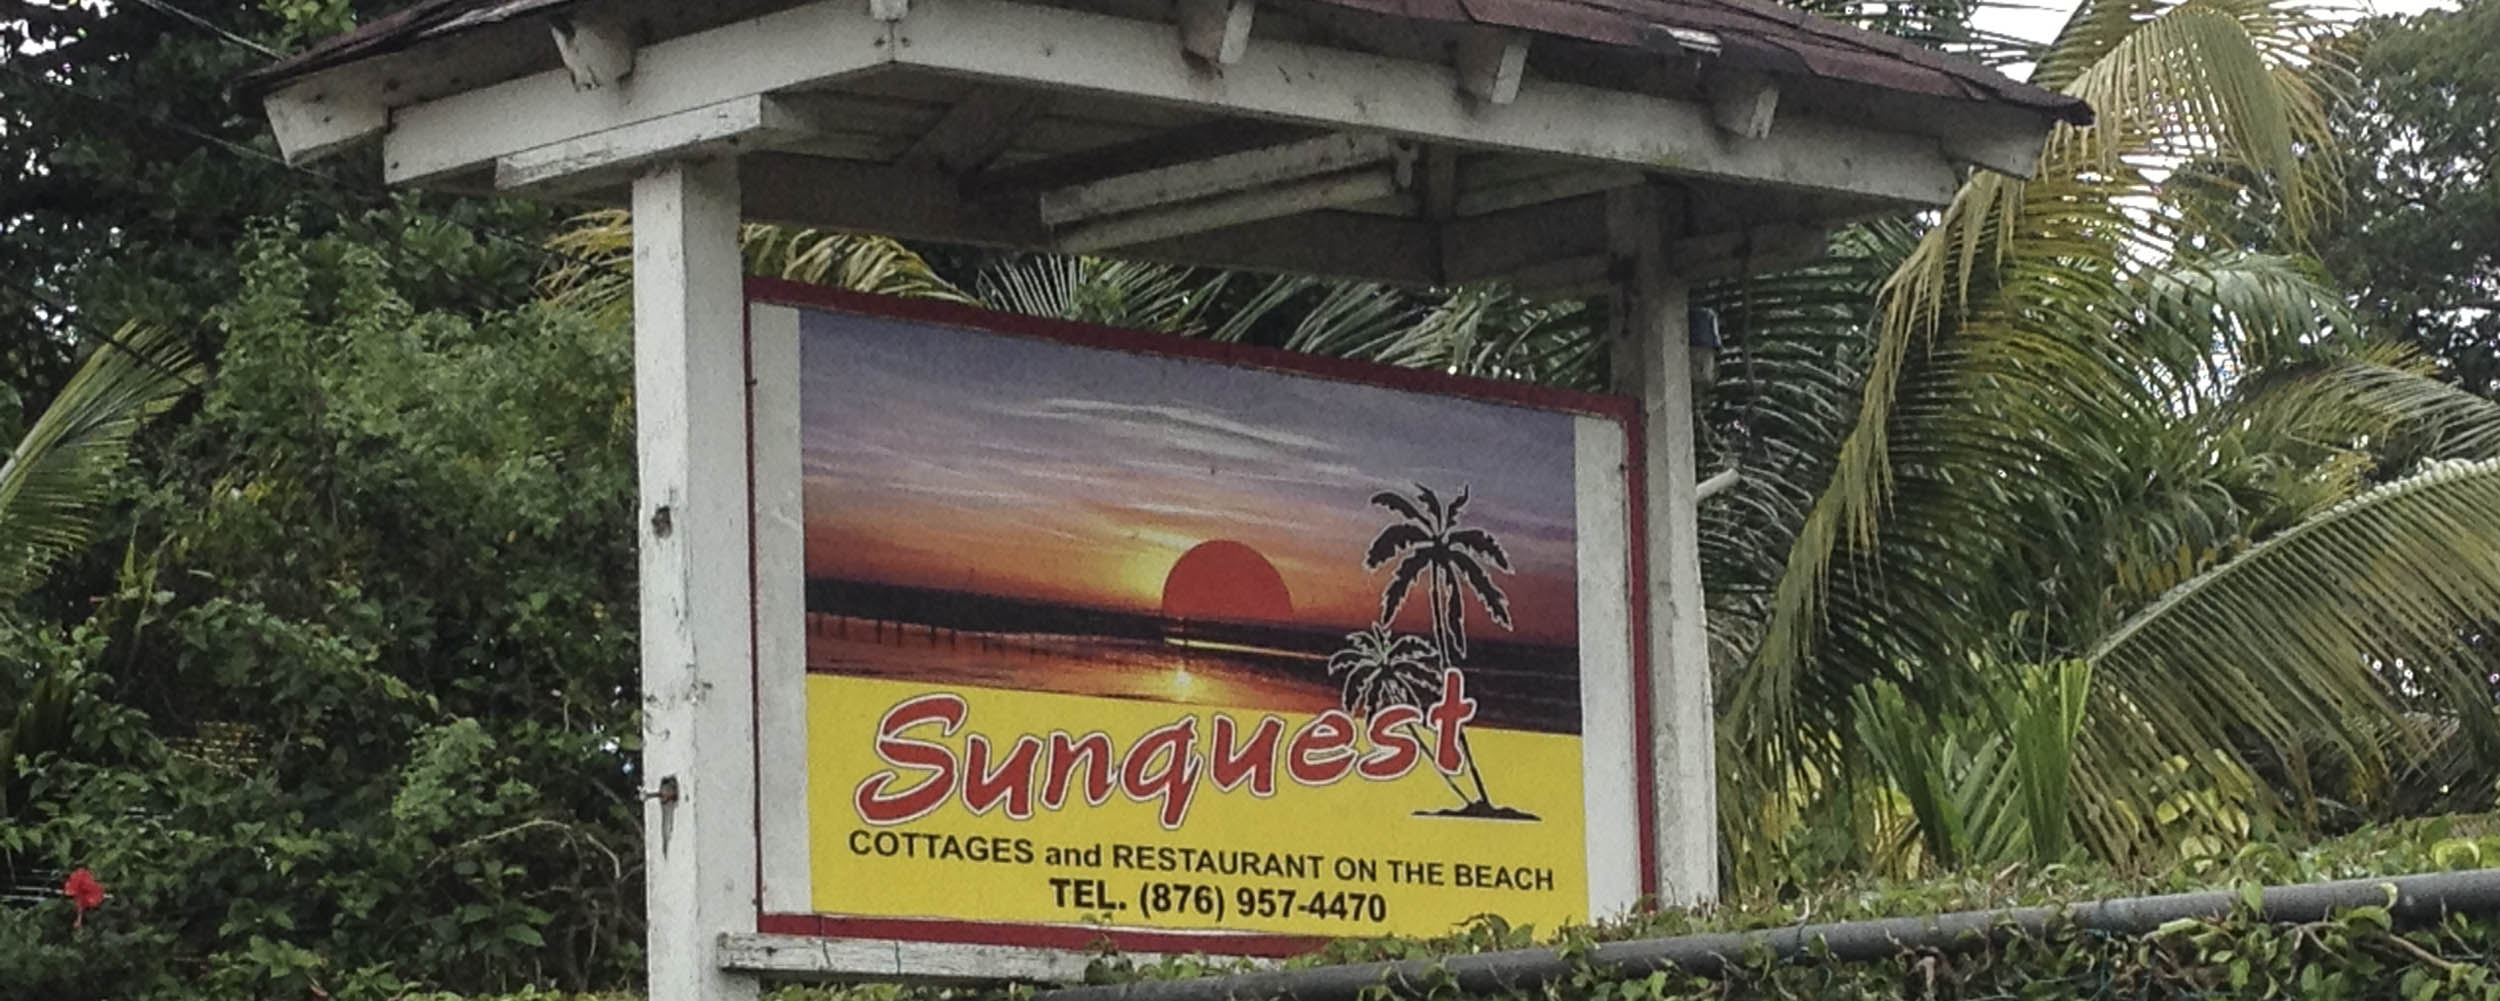 Sunquest Cottages - Negril Jamaica